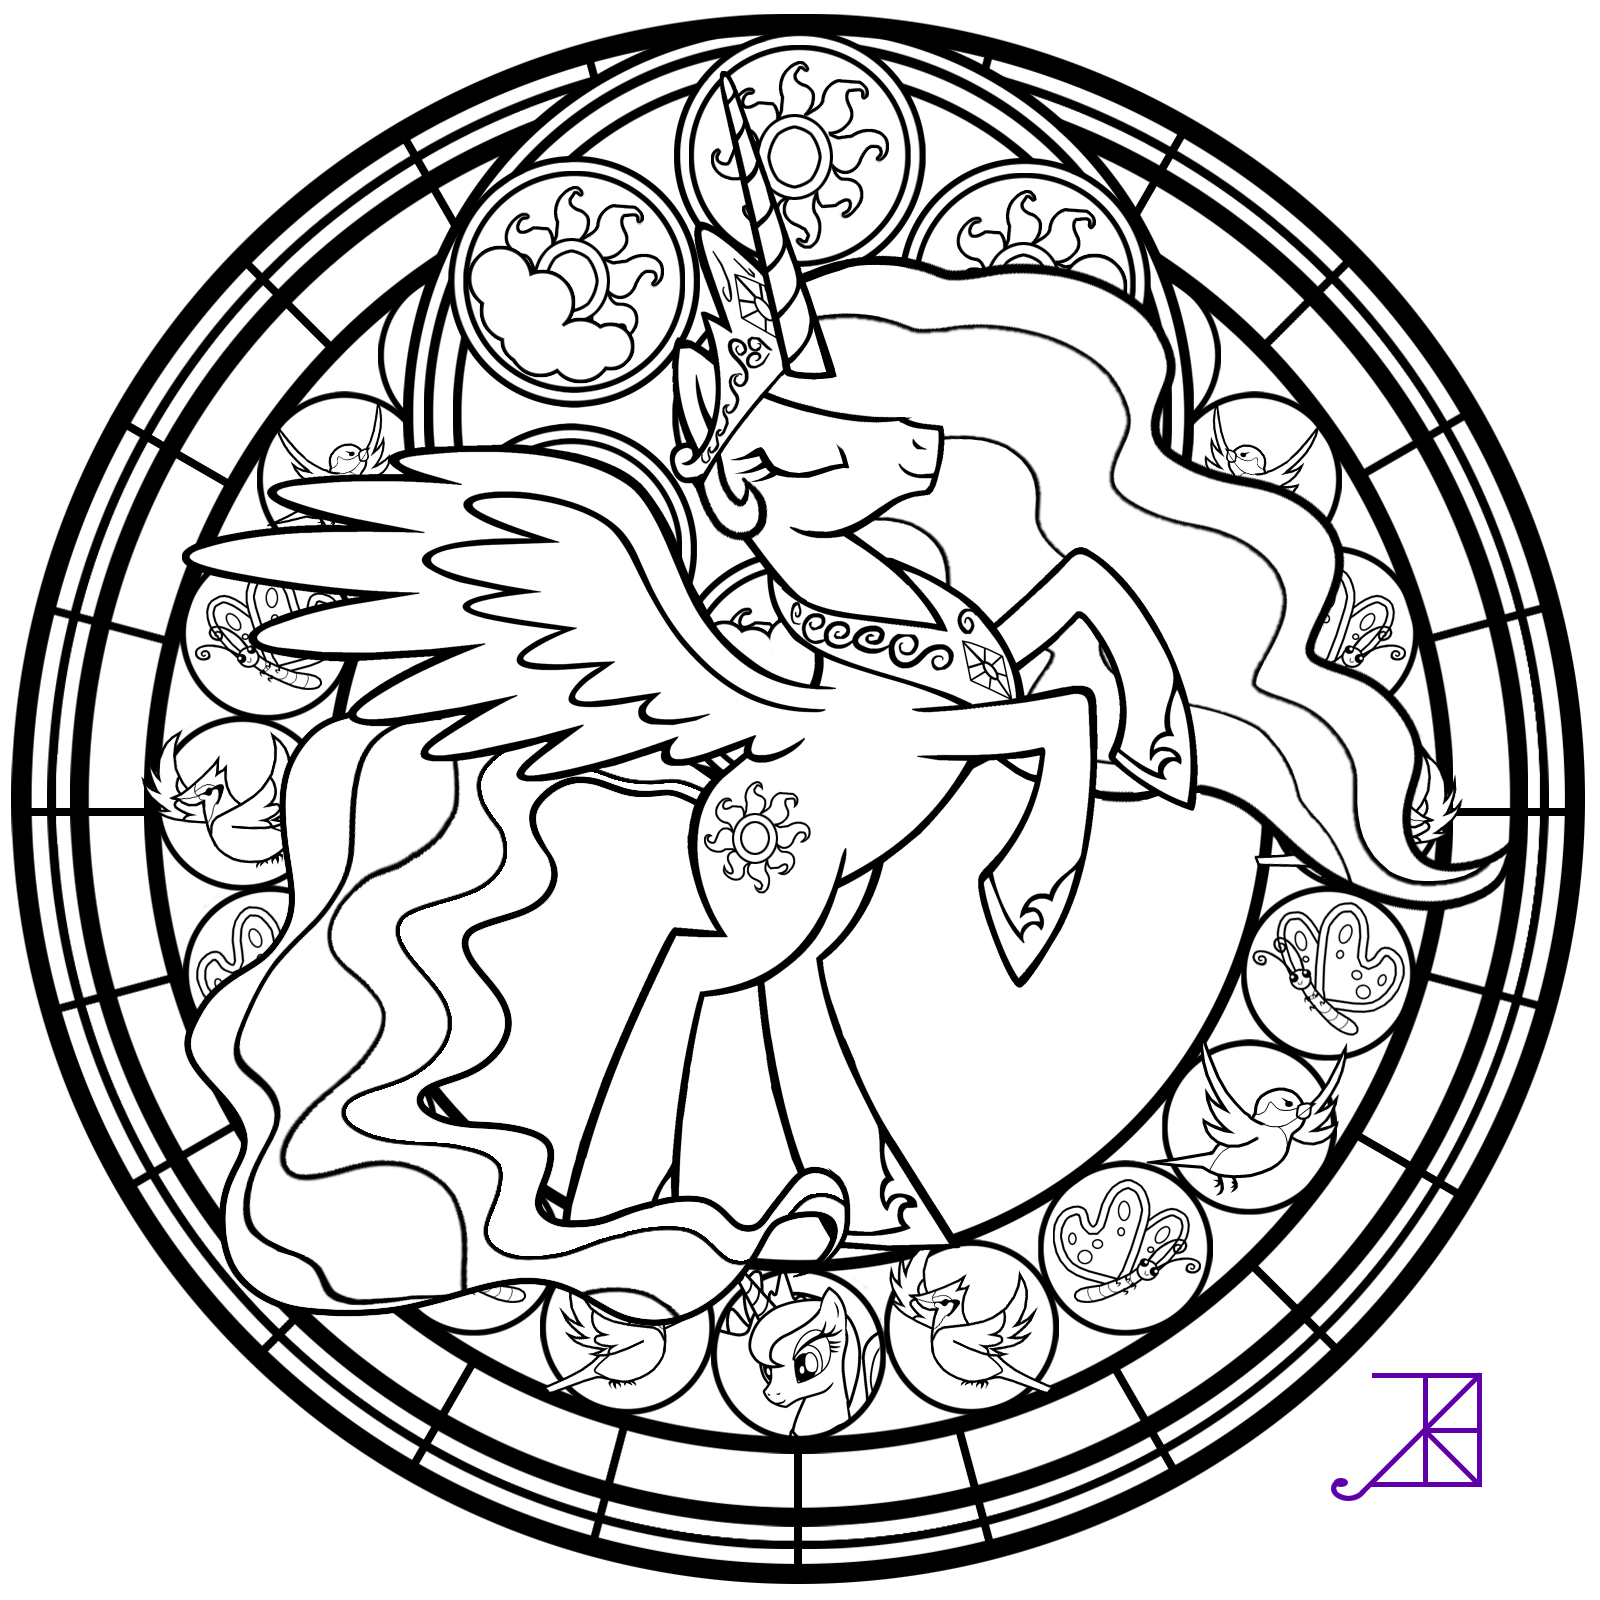 stained glass coloring pages printable - christian stained glass coloring pages coloring pages